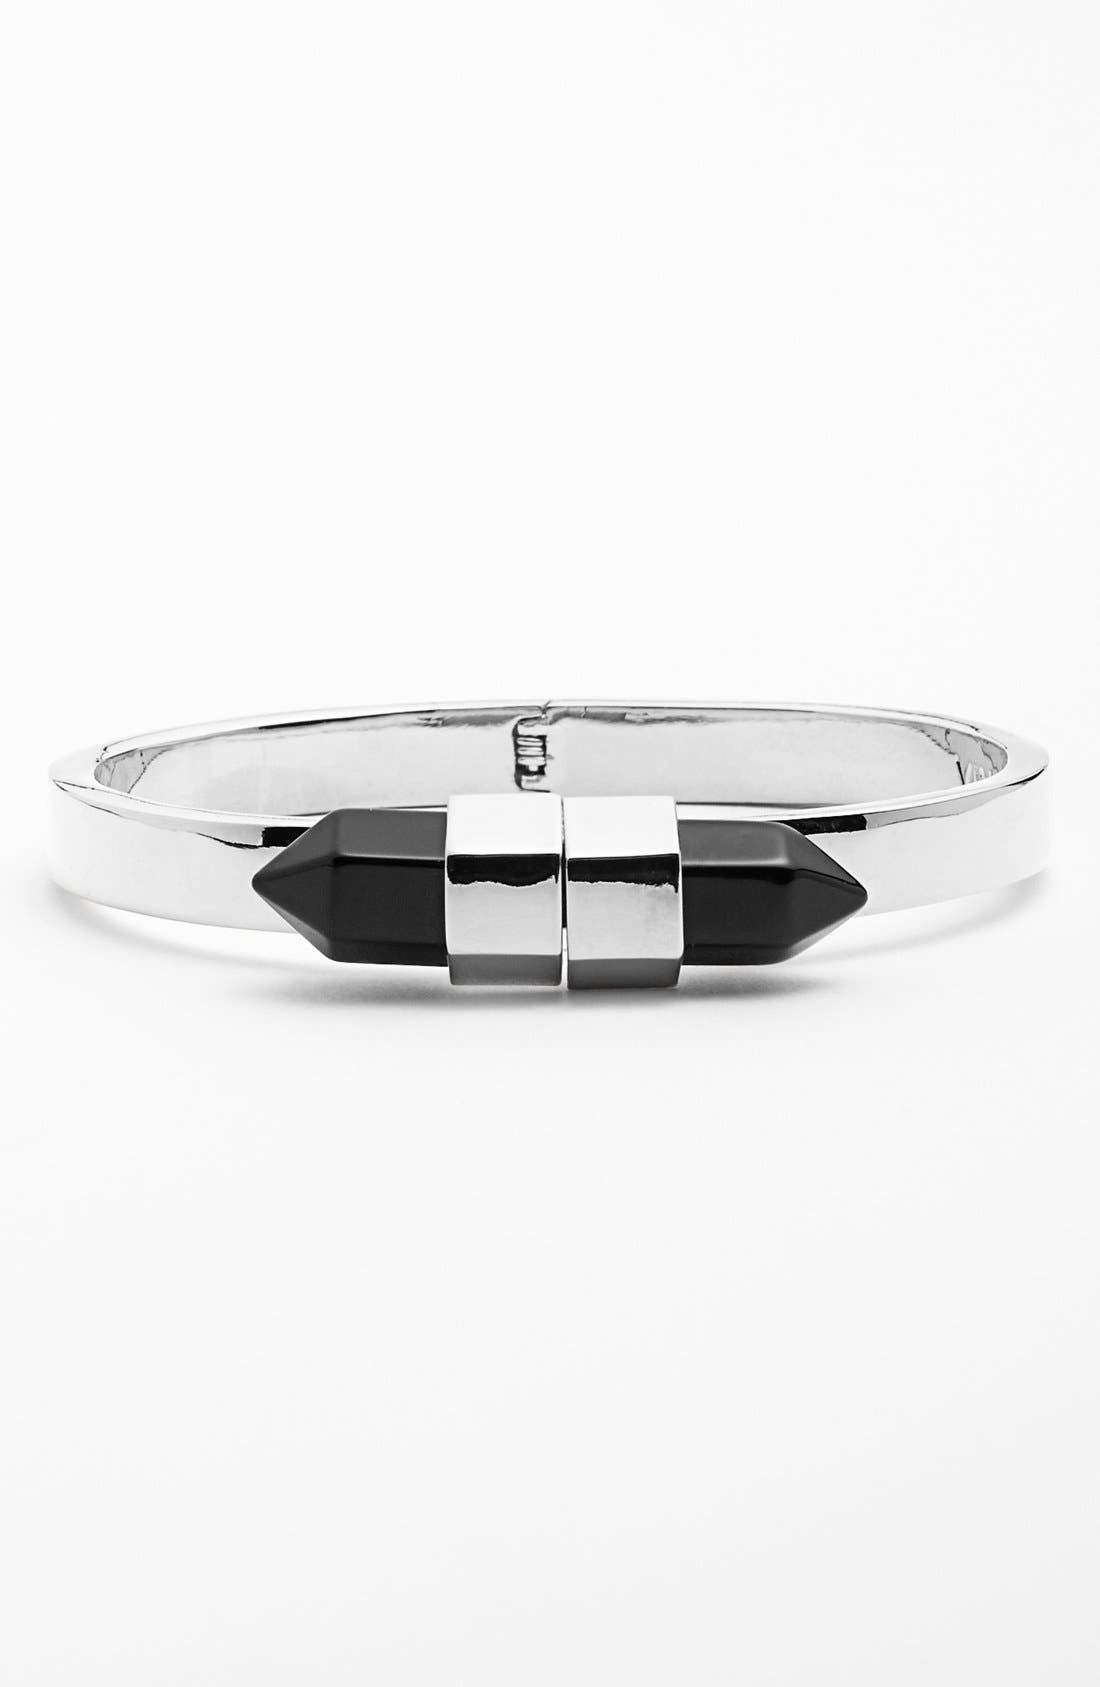 Main Image - Vince Camuto 'Bullet Proof' Hinged Bracelet